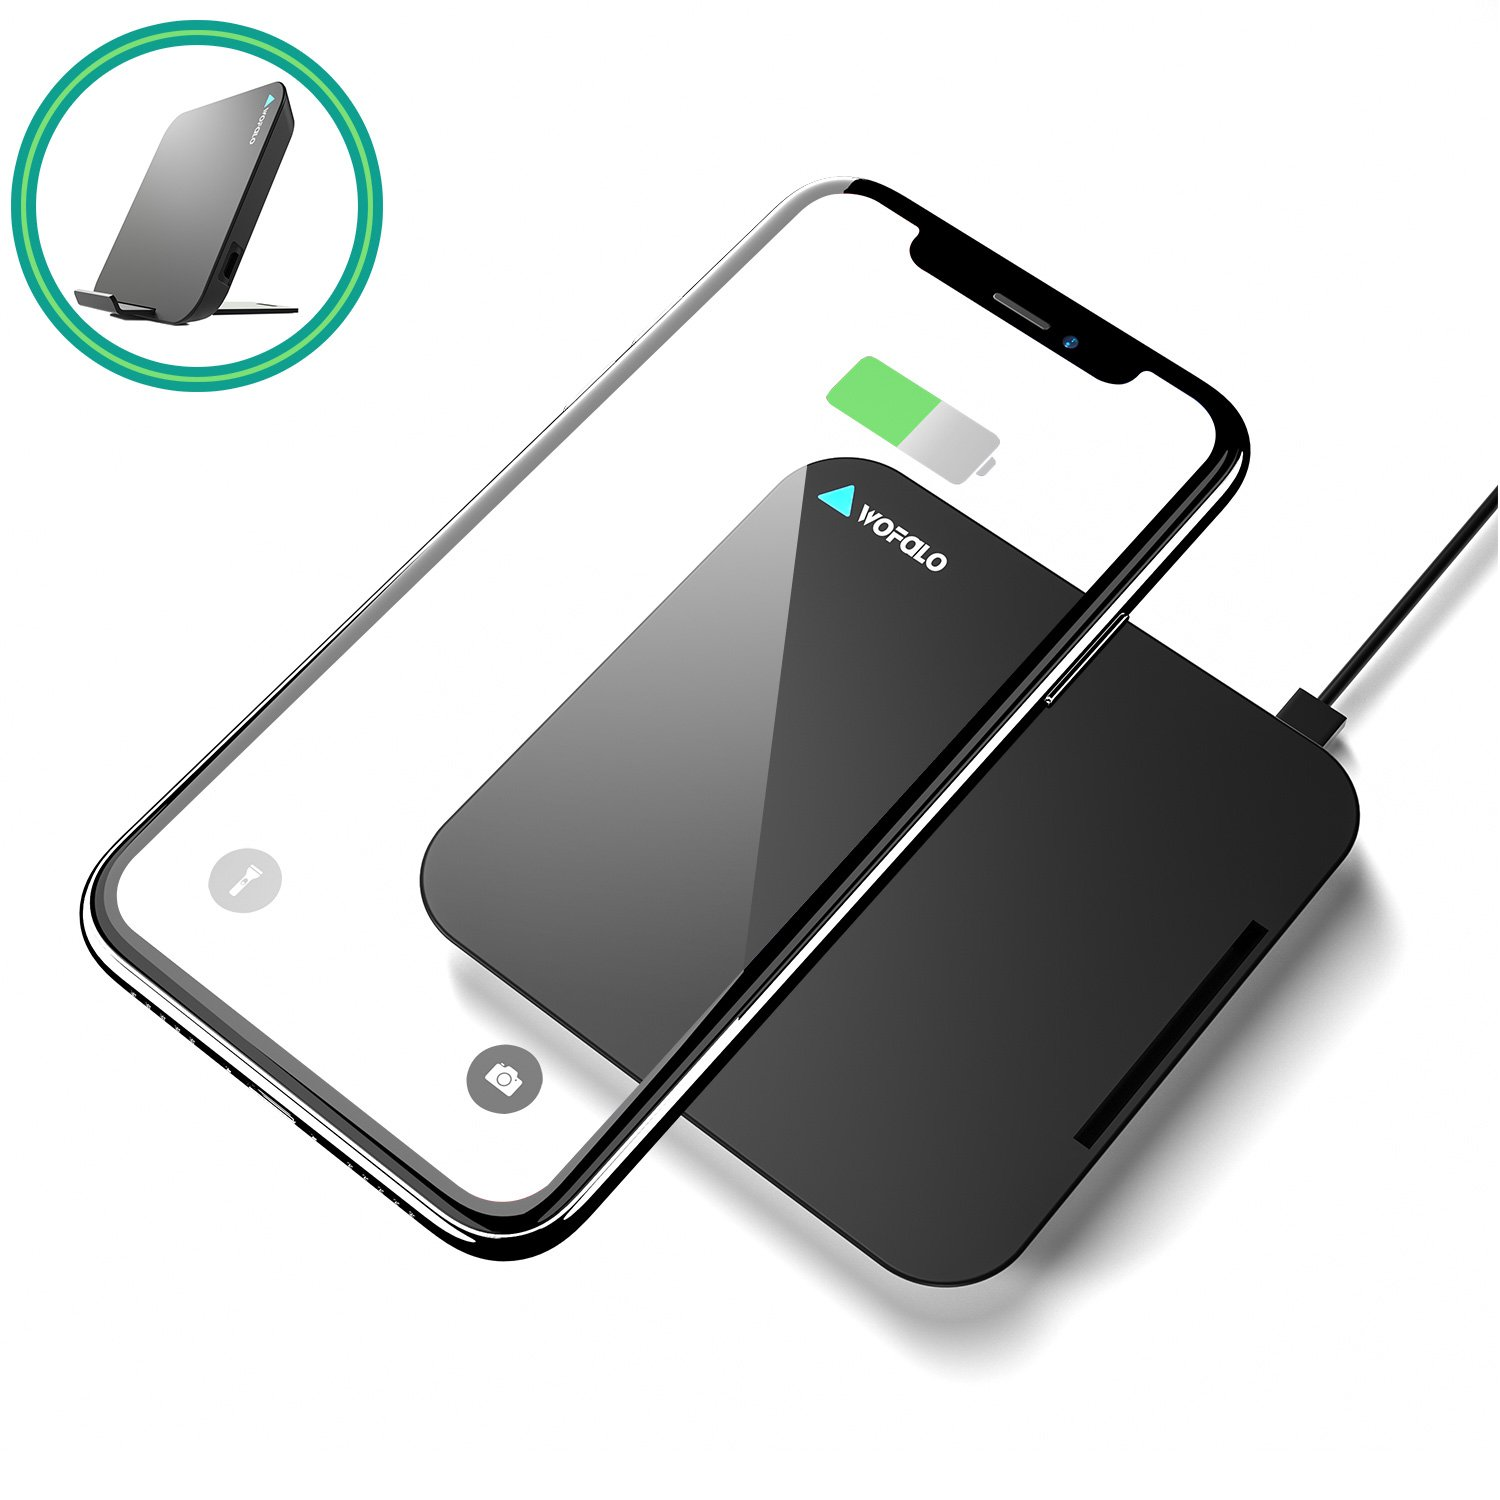 Wireless Charger 2 in 1 Qi Charging Pad Stand, Wofalodata Fast Wireless Charger for iPhone 8 / 8 Plus, iPhone X, Galaxy S9 S9 Plus Note 8 /S8 / S8 Plus, Note 5, S6 Edge+, S6, S6 Edge, S7 Edge (Small & Portable)